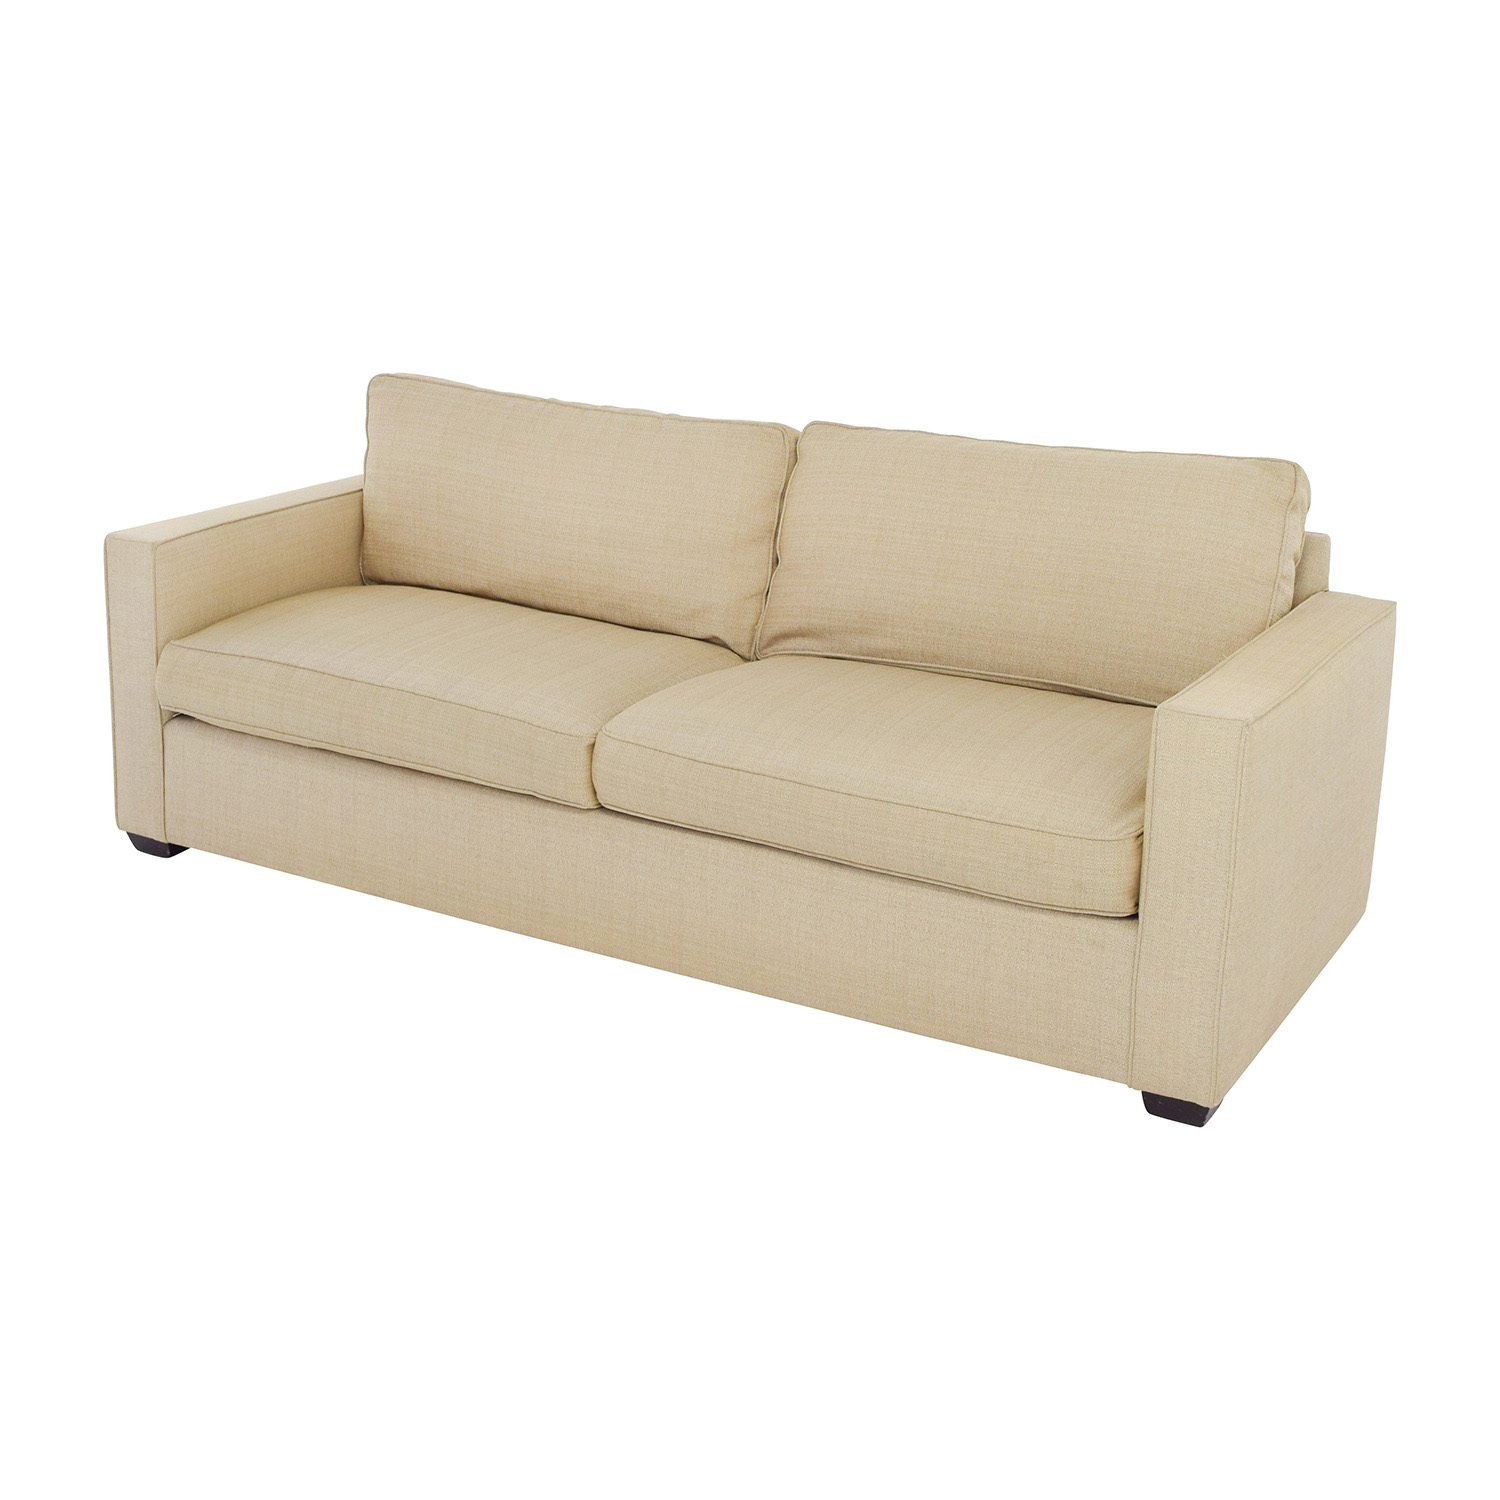 65 Off Room And Board Room Board Beige Two Cushion